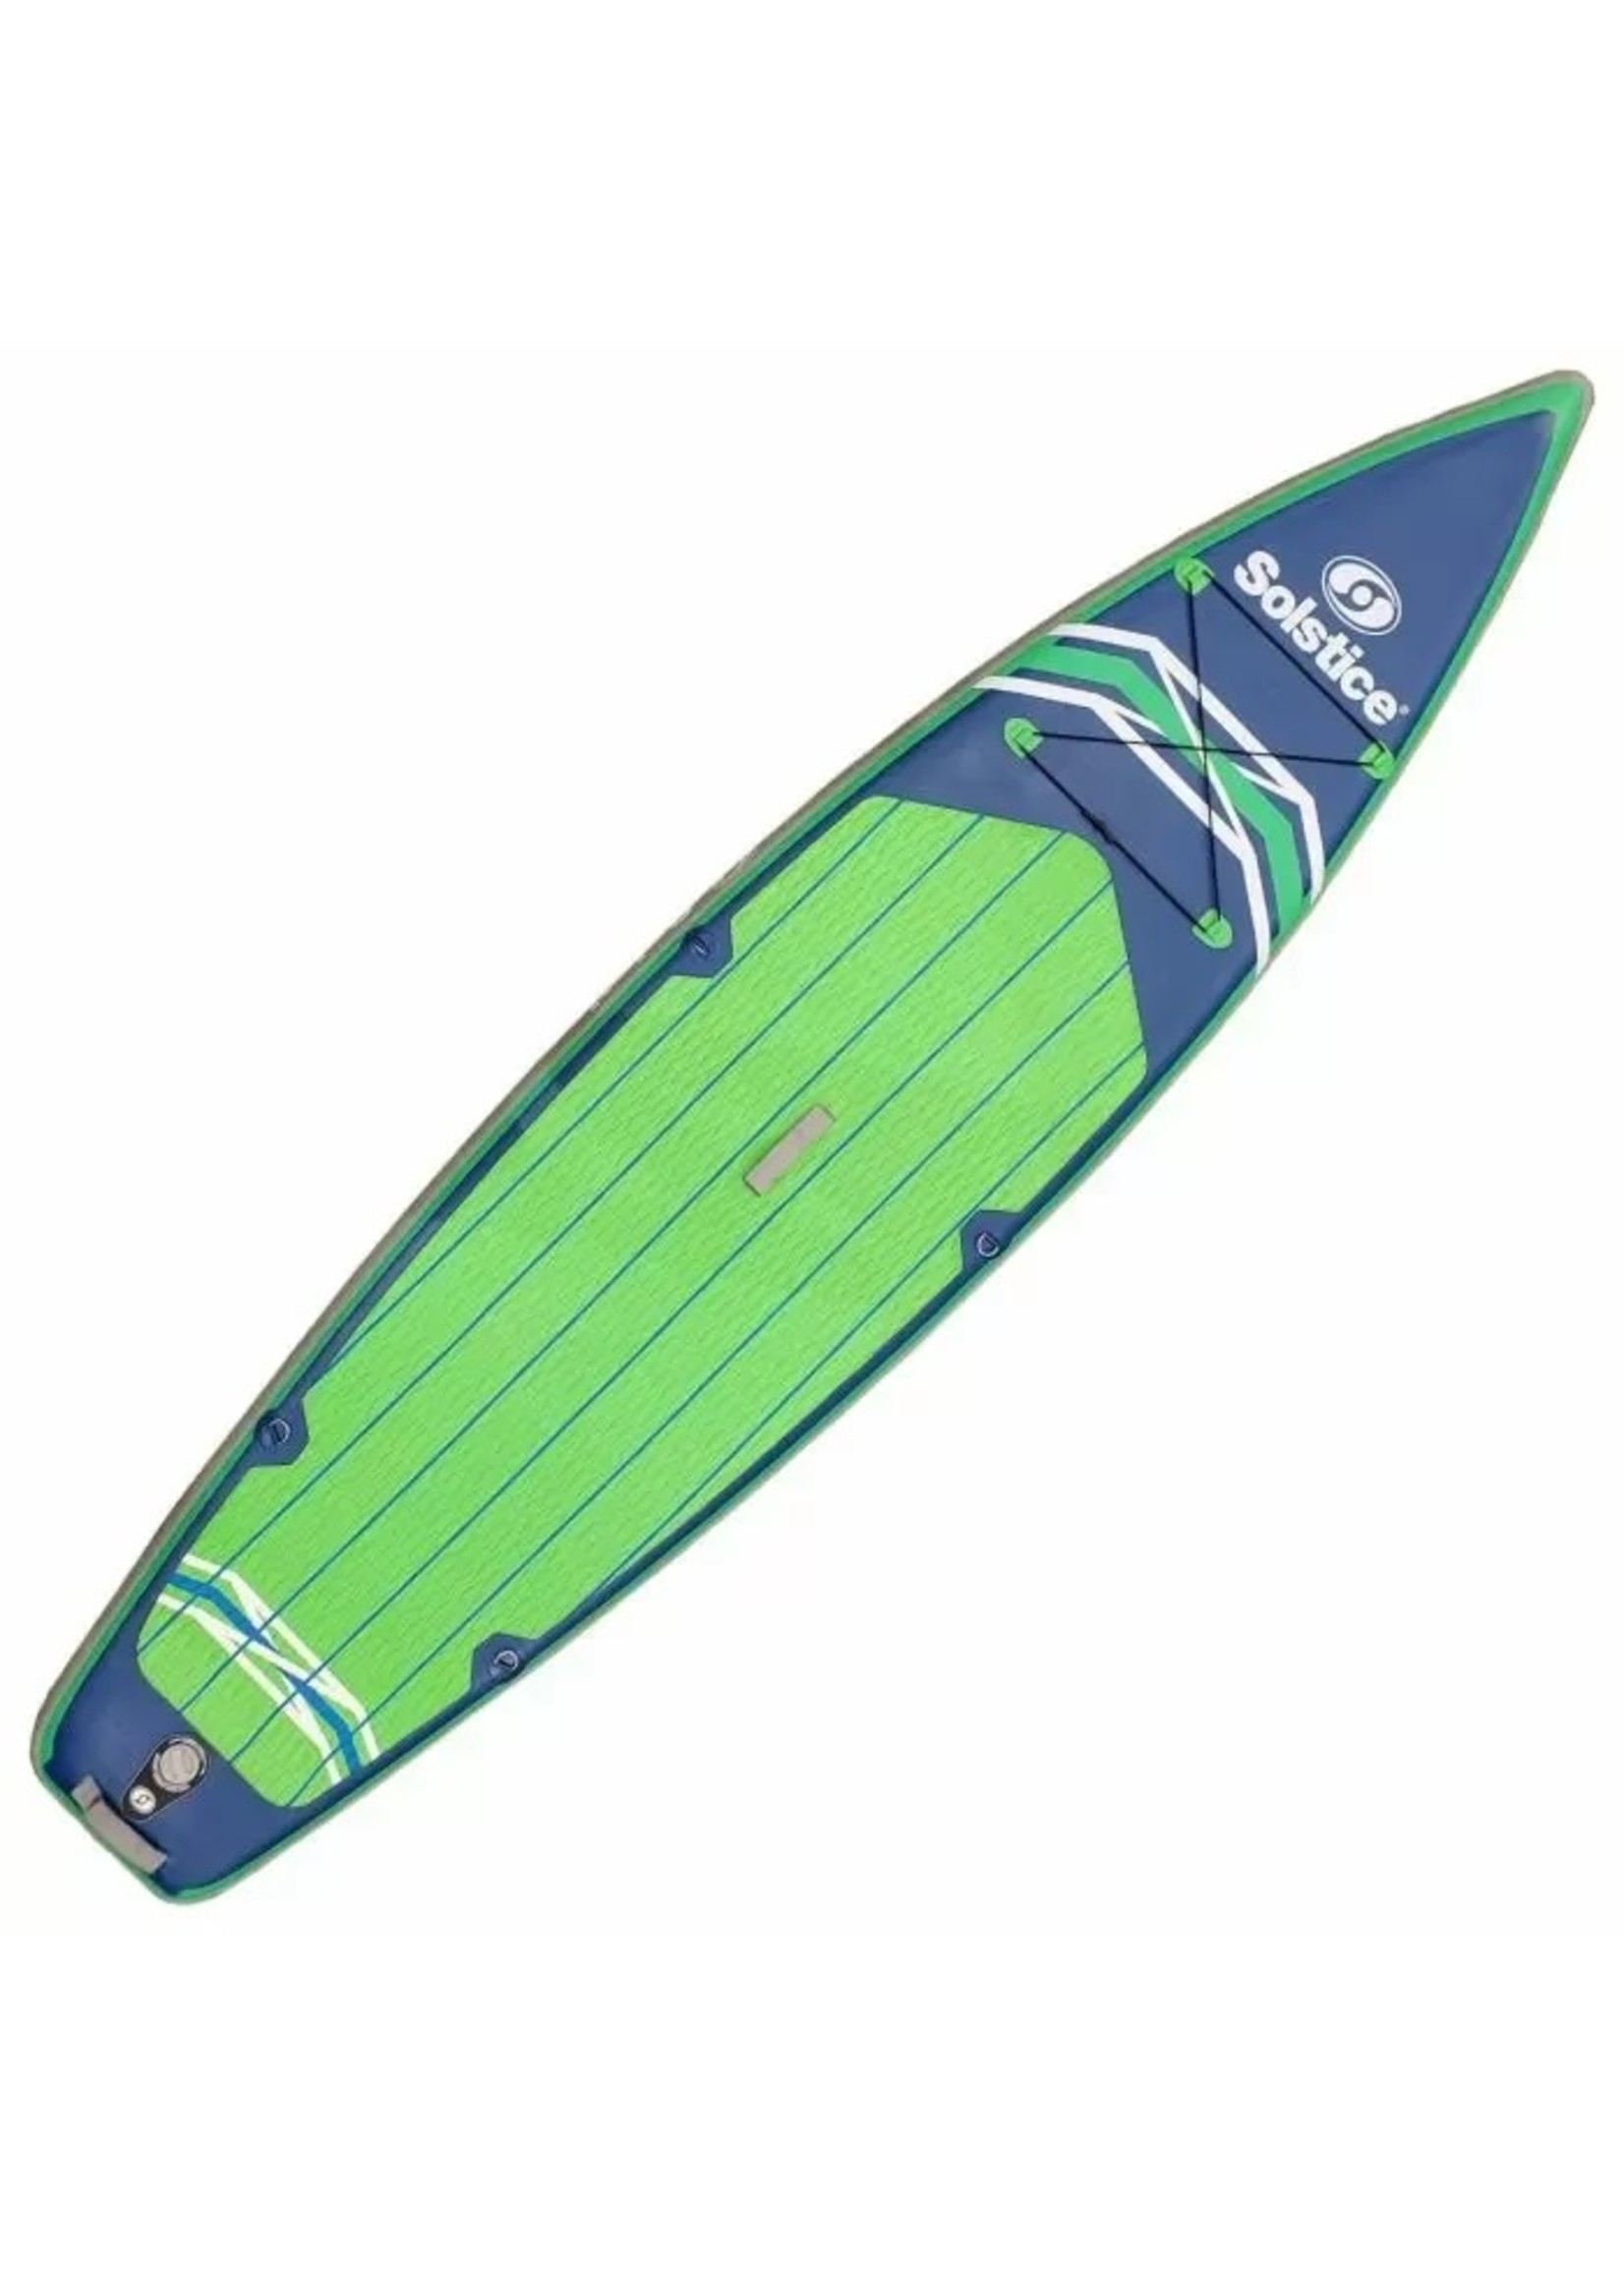 Solstice Solstice 11' Inflateable SUP Package